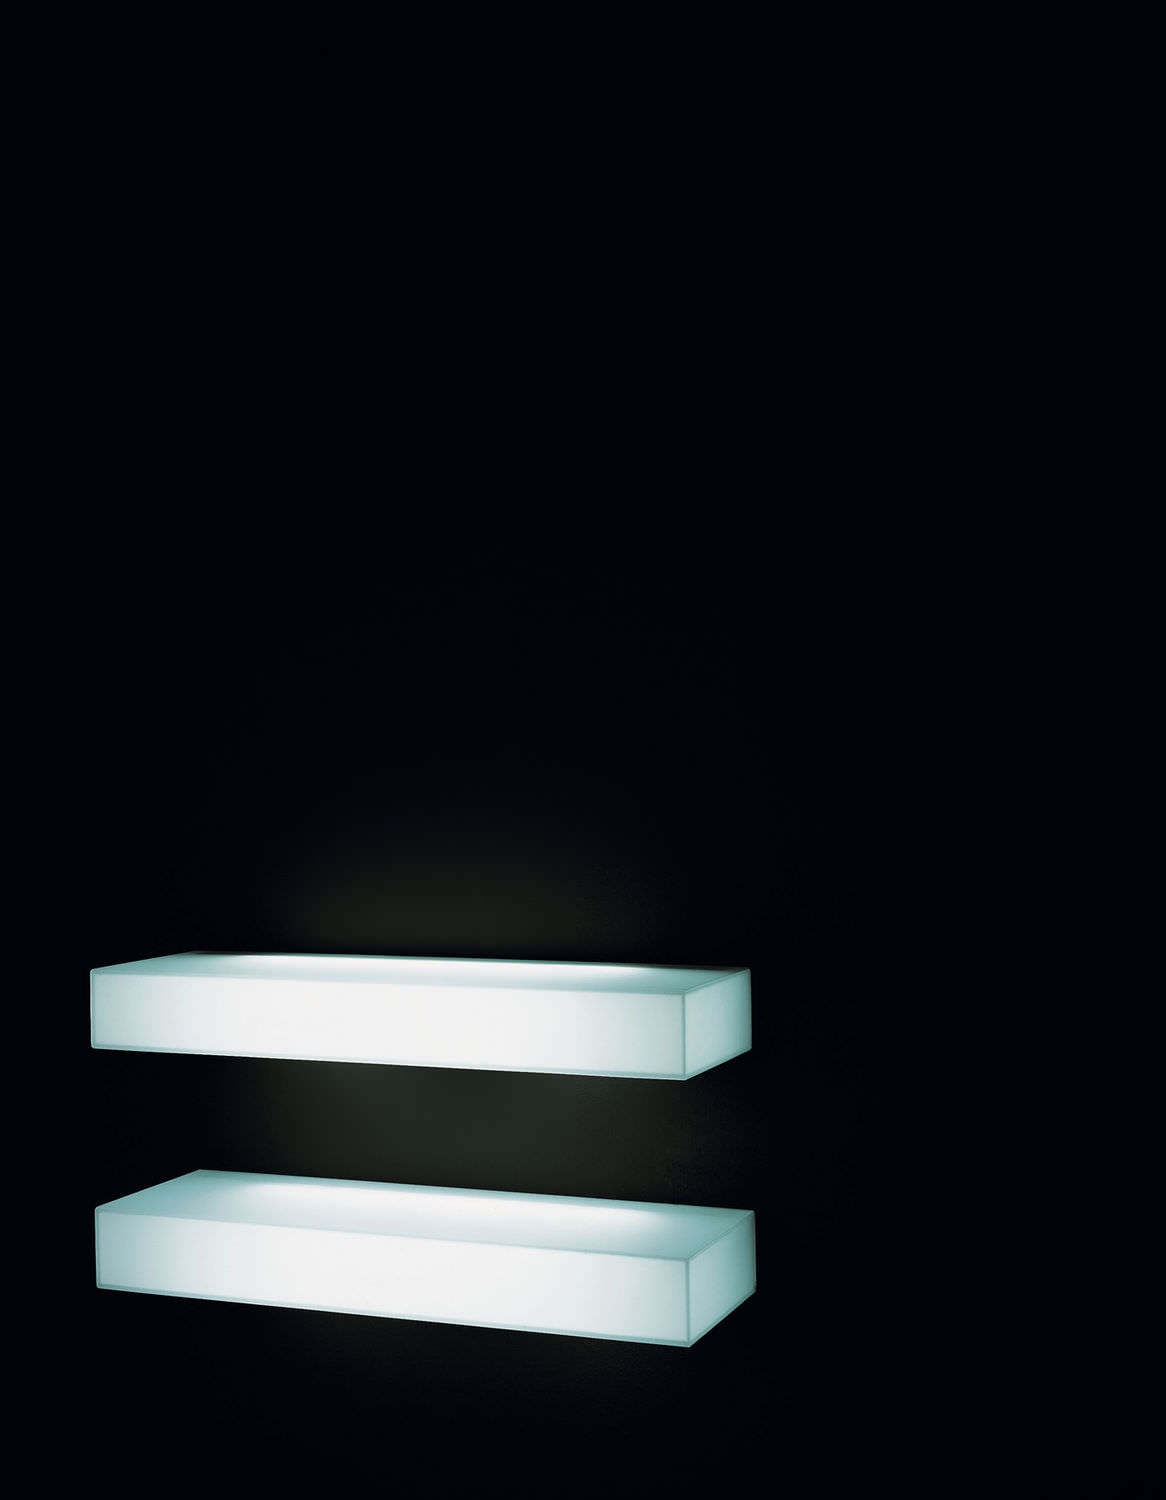 Wall Mounted Shelf Contemporary Glass Illuminated Light Within Illuminated Glass Shelf (Image 15 of 15)